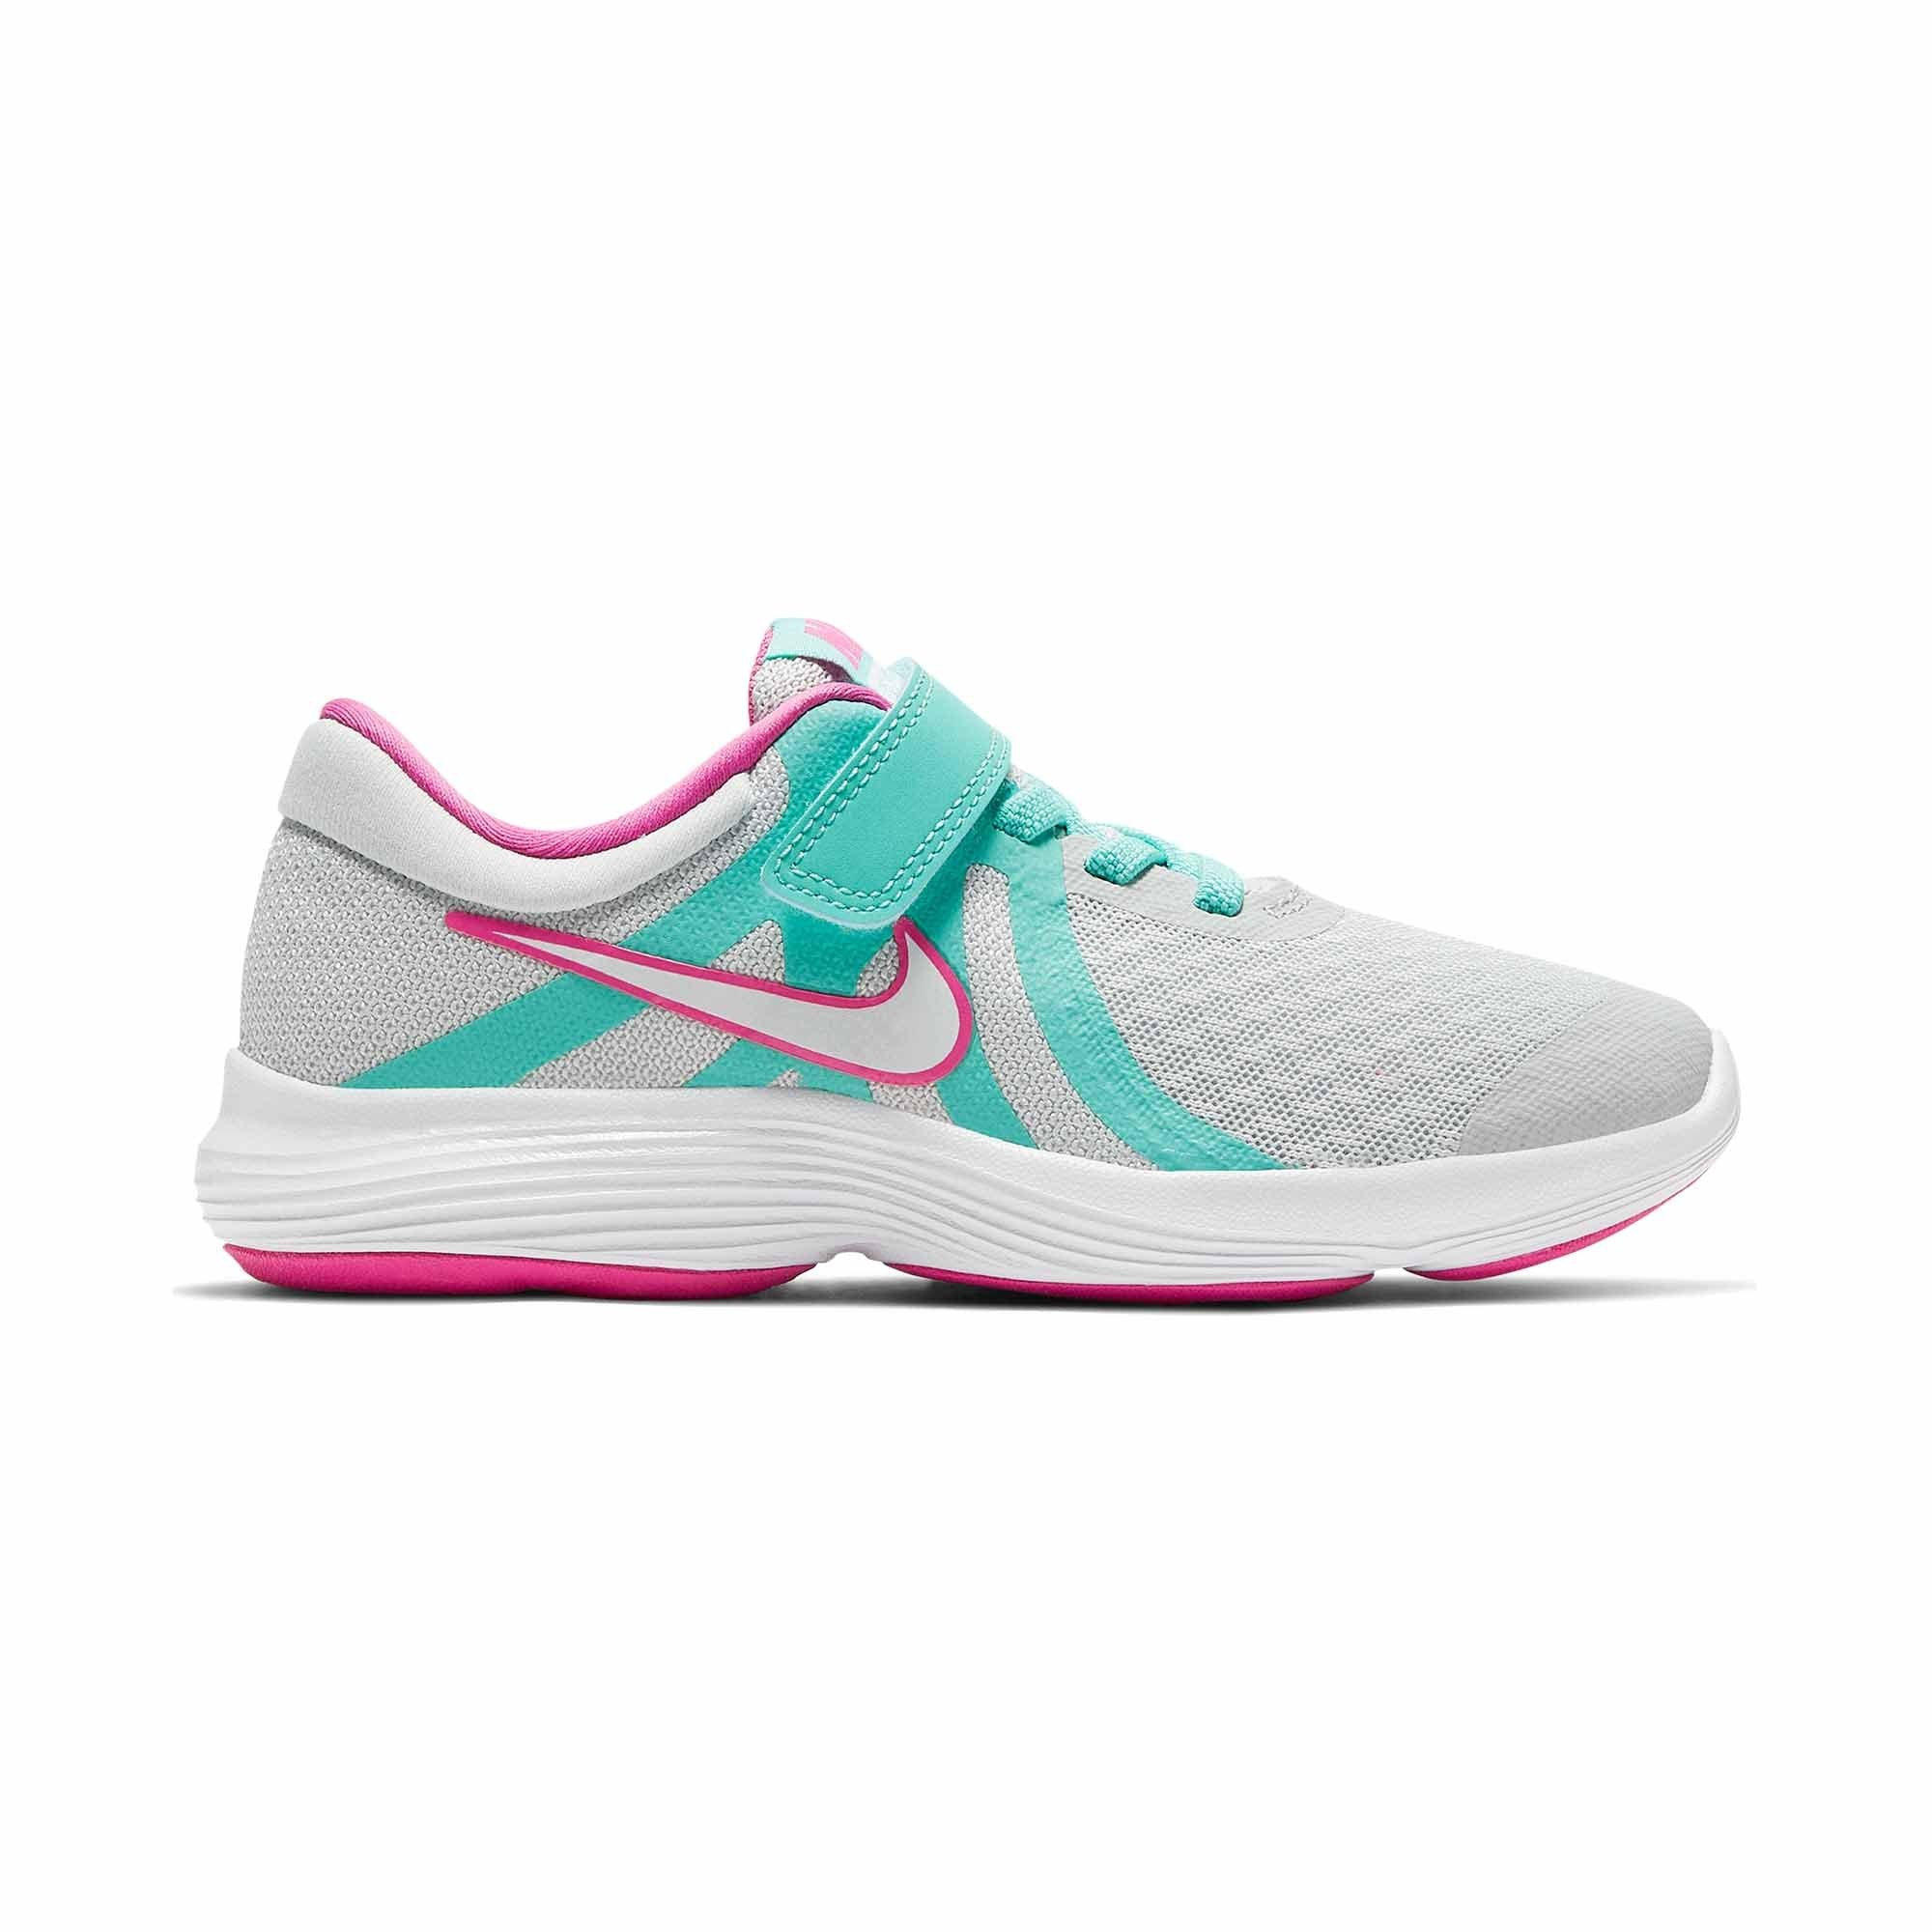 a6fafe13 Buy Nike Girls Revolution 4 Aqua Pre-School Running Shoes Online in  Singapore | Royal Sporting House